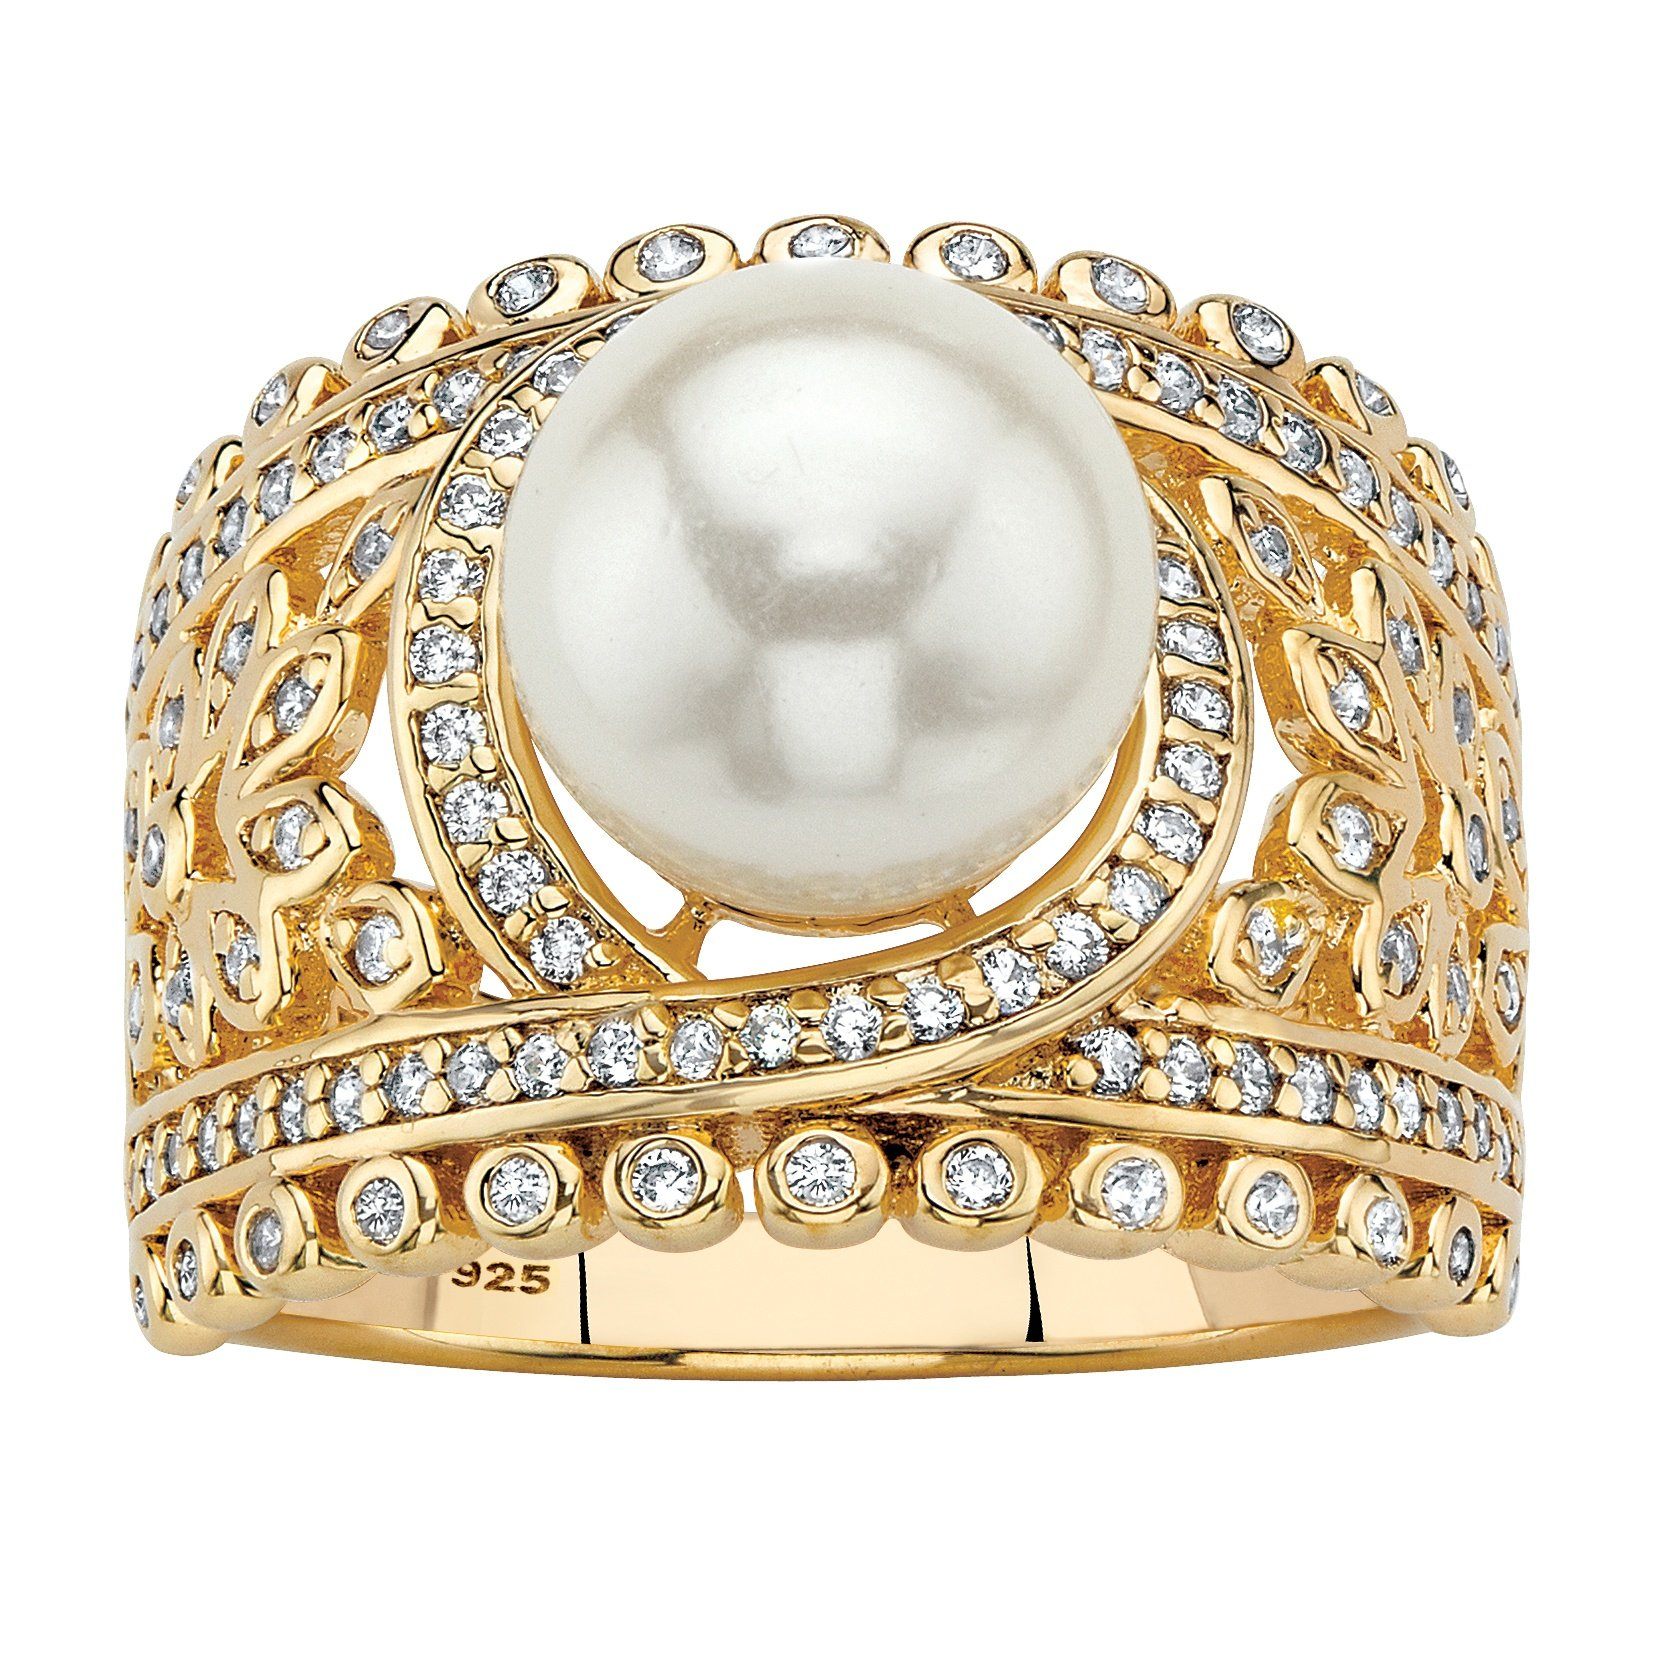 14K Yellow Gold over Sterling Silver Simulated Pearl and Cubic Zirconia Floral Ring Size 8